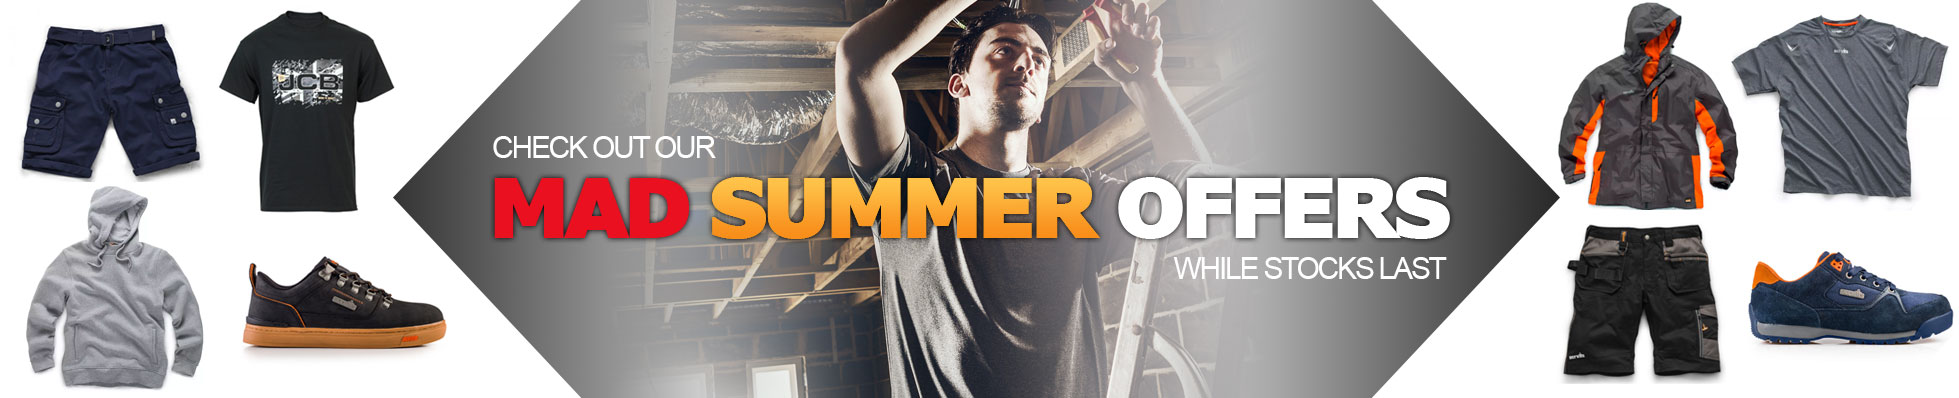 Get some scorching deals in our MAD Summer Offers